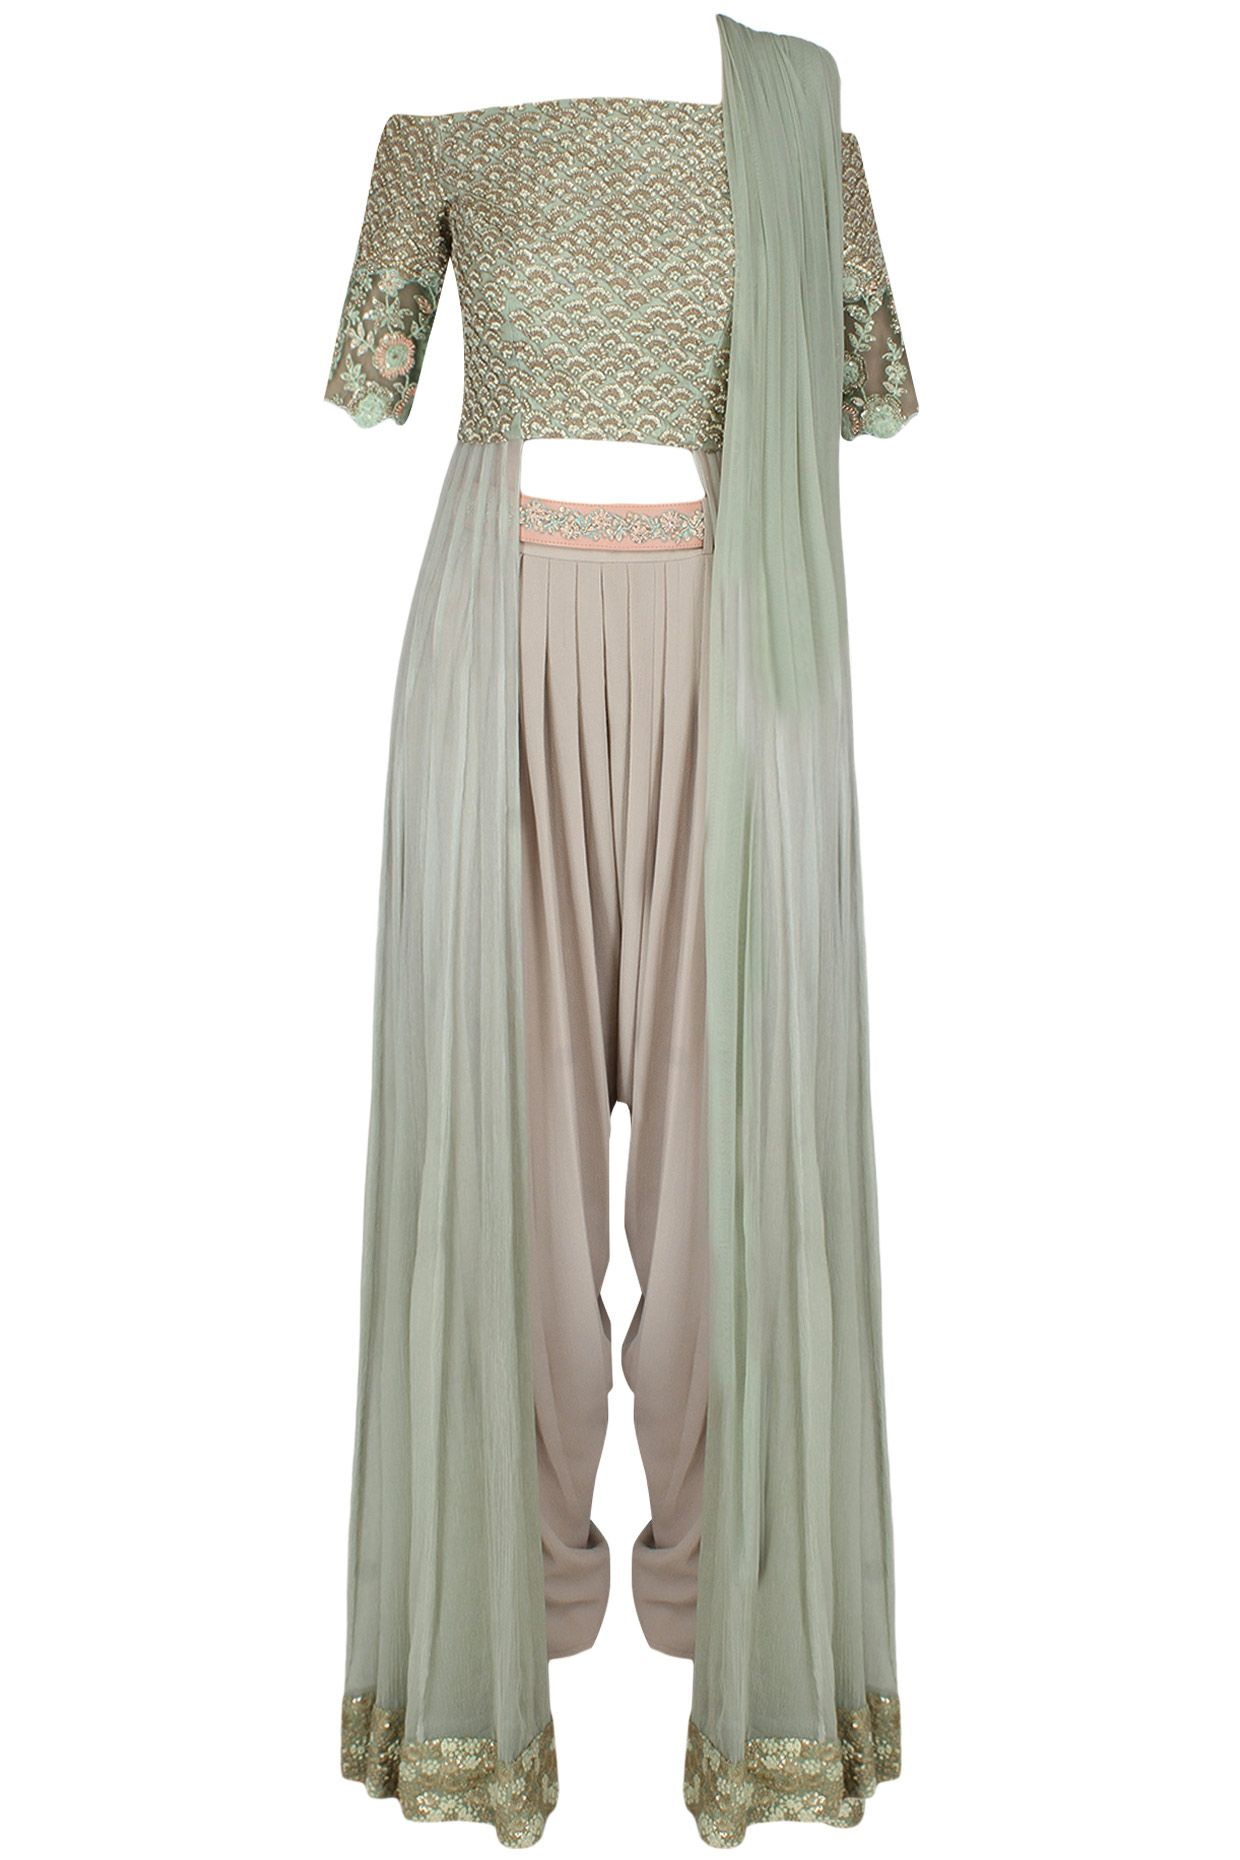 f52f0a5cbd48 Mint green off shoulder front open anarkali with nude draped dhoti pants  set available only at Pernia s Pop Up Shop.